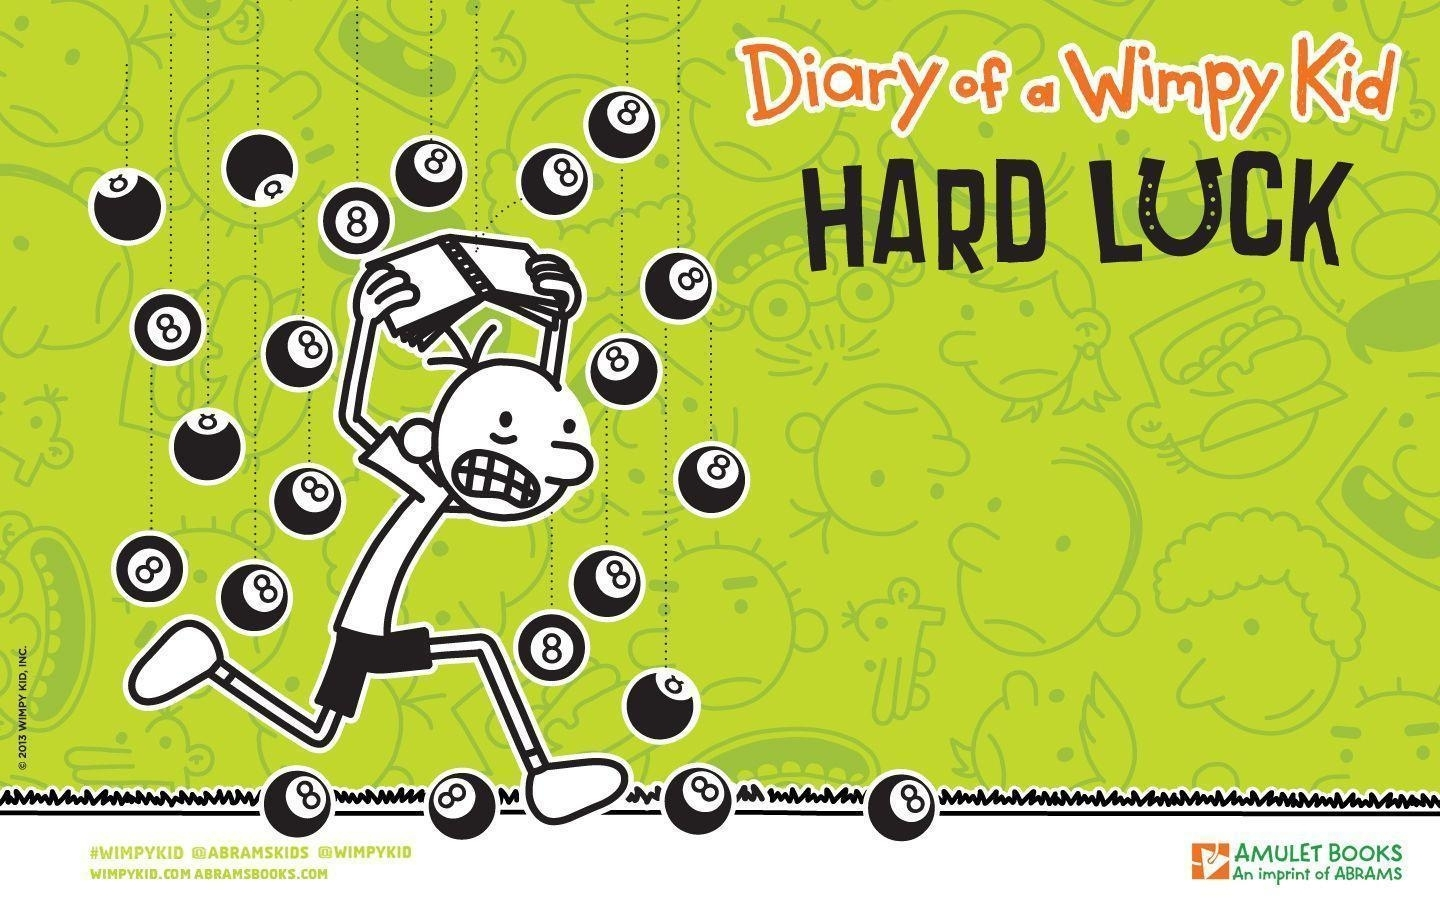 10 Best Diary Of A Wimpy Kid Wallpaper FULL HD 1920×1080 For PC Background